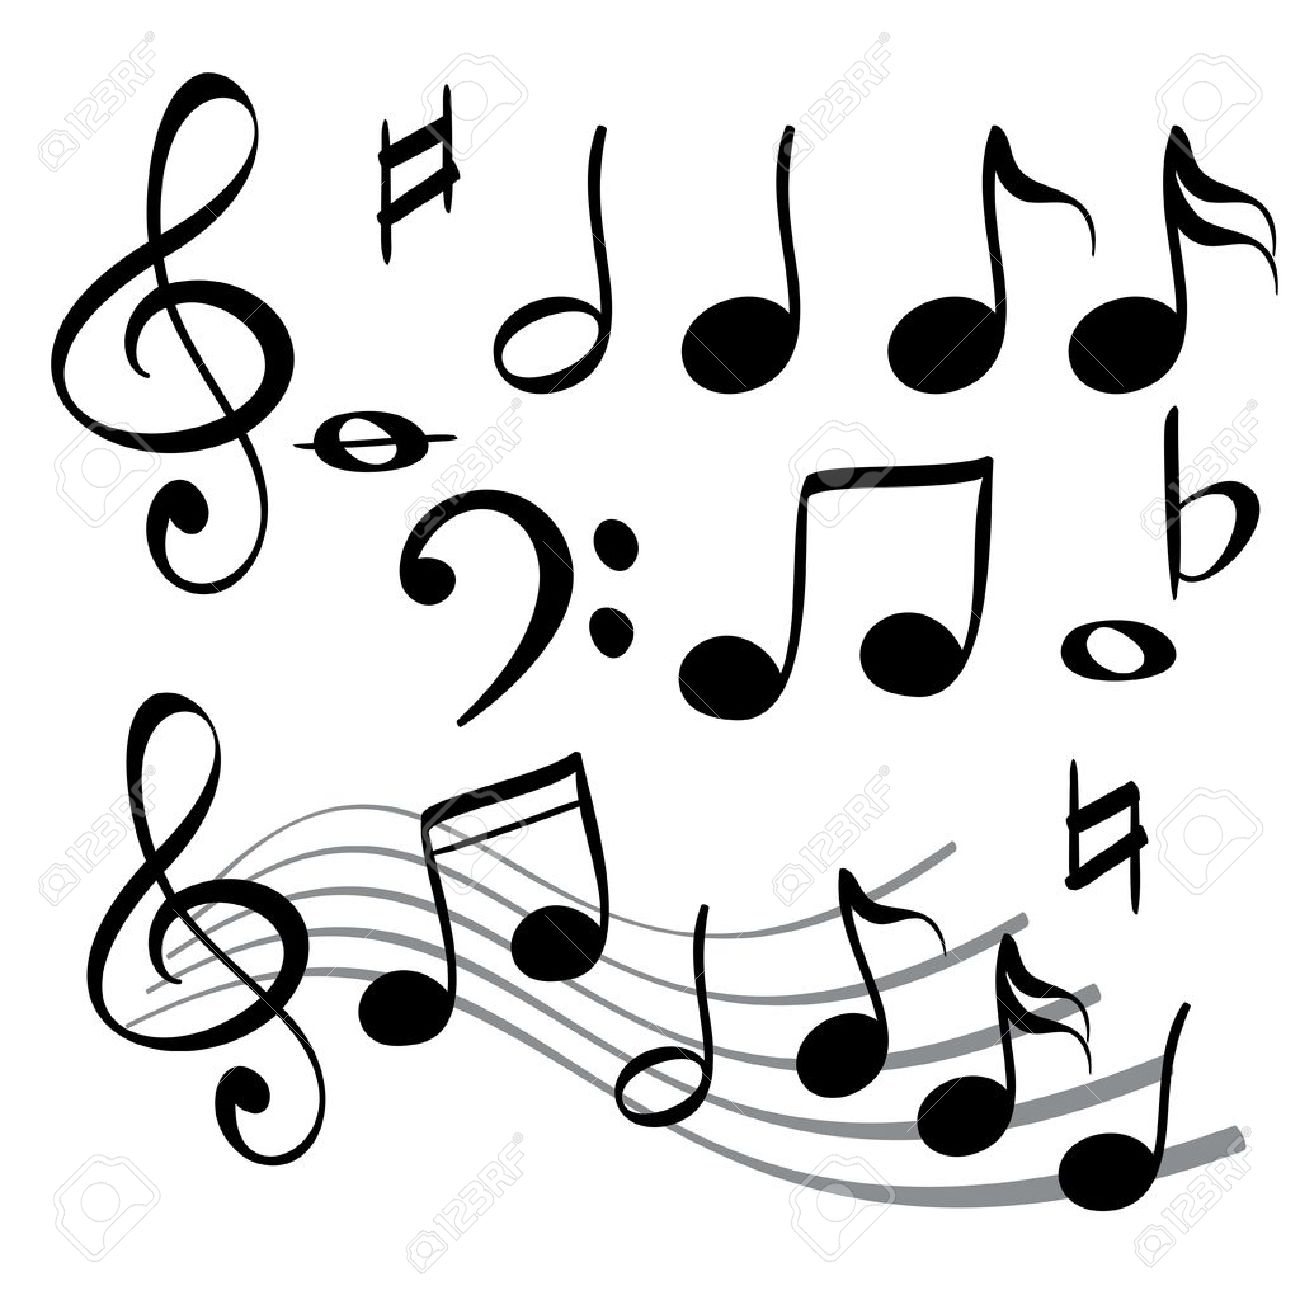 music note icon vector illustration royalty free cliparts vectors